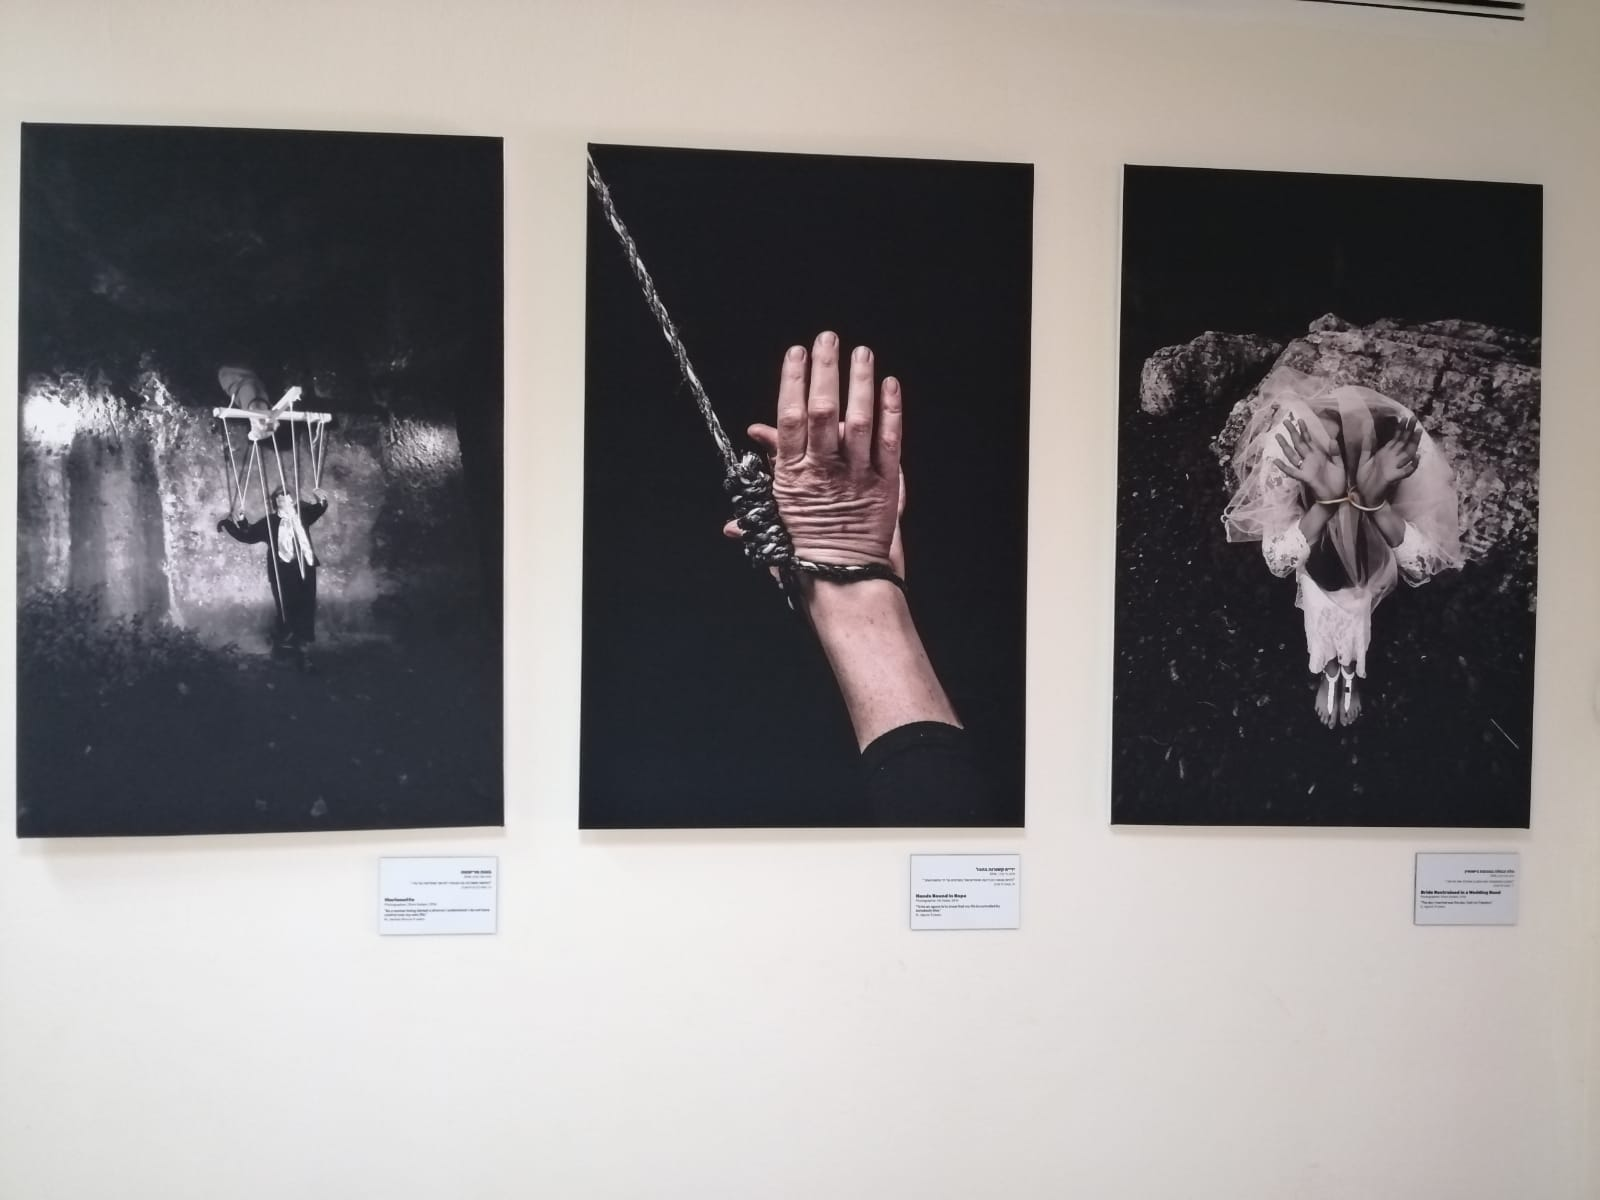 Part of the exhibition